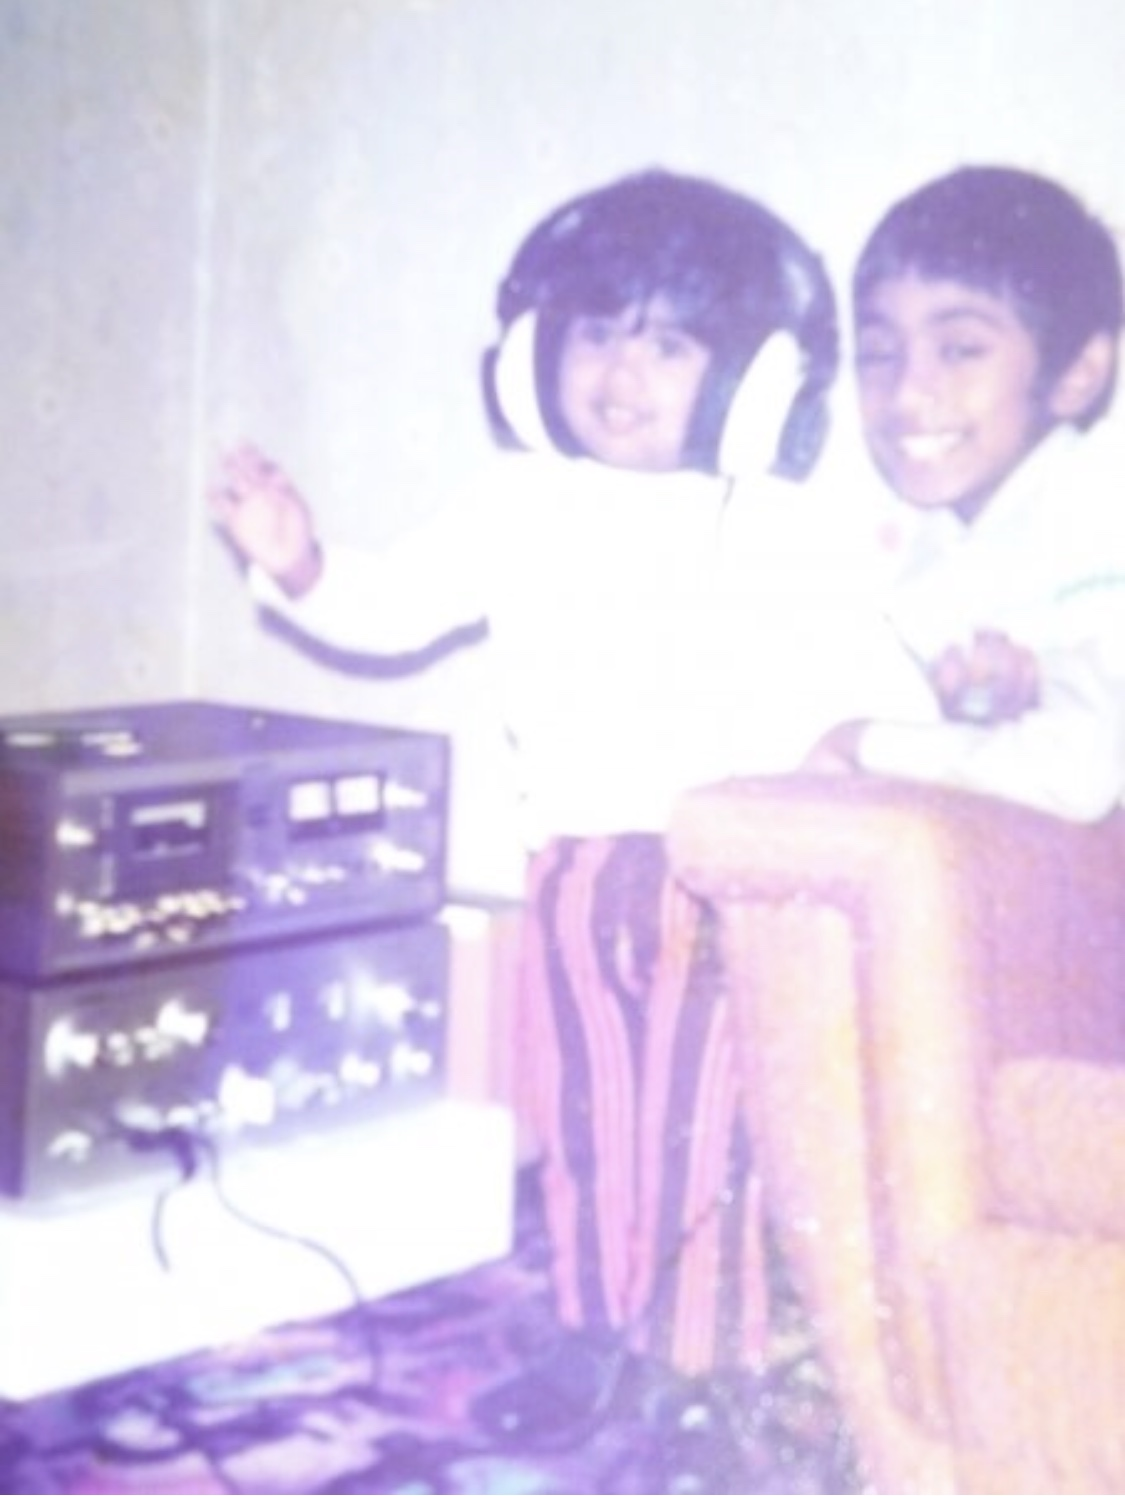 My big brother, by my side so I didn't fall as a toddler busy fake  conducting the orchestra to music only I could hear. The rest of the family just had to guess which song by my master conducting. FYI it was Grease, not sure of which track but I was (still am) obsessed with the  movie and entire soundtrack.